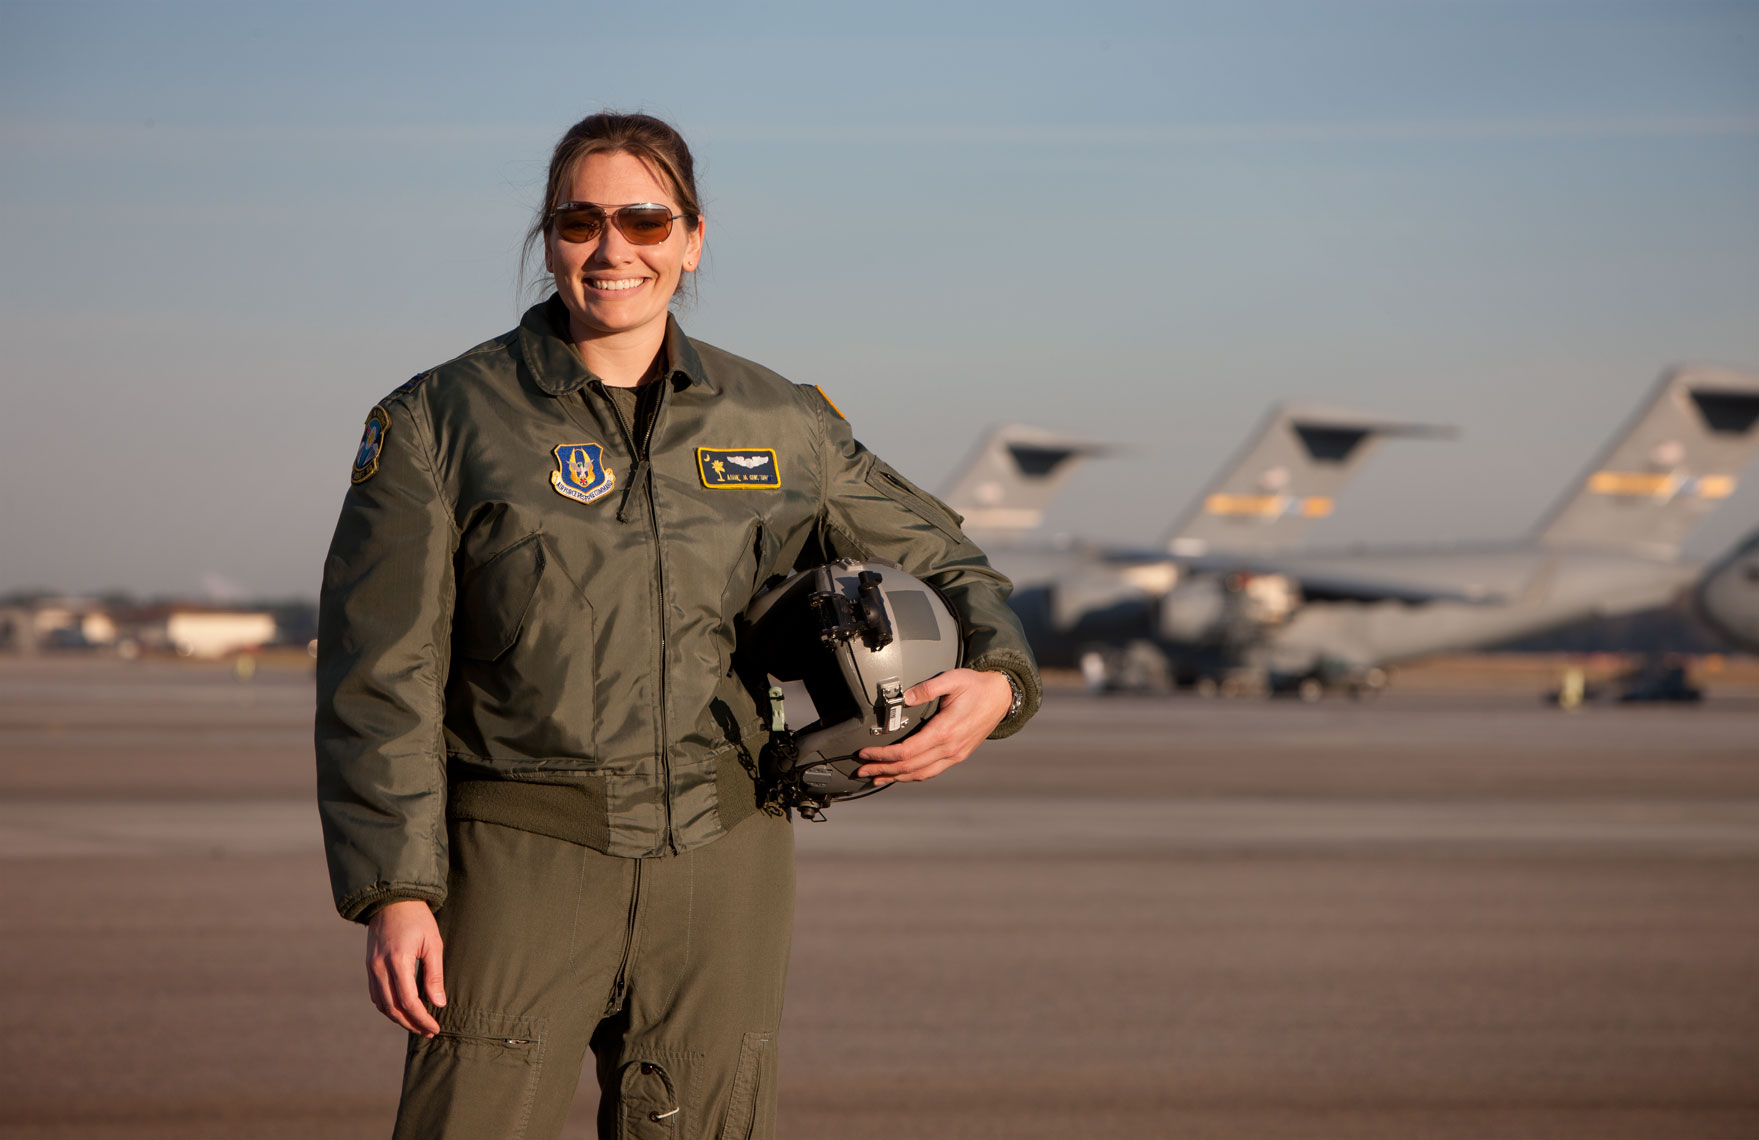 Air Force Captain with C-17 Transports